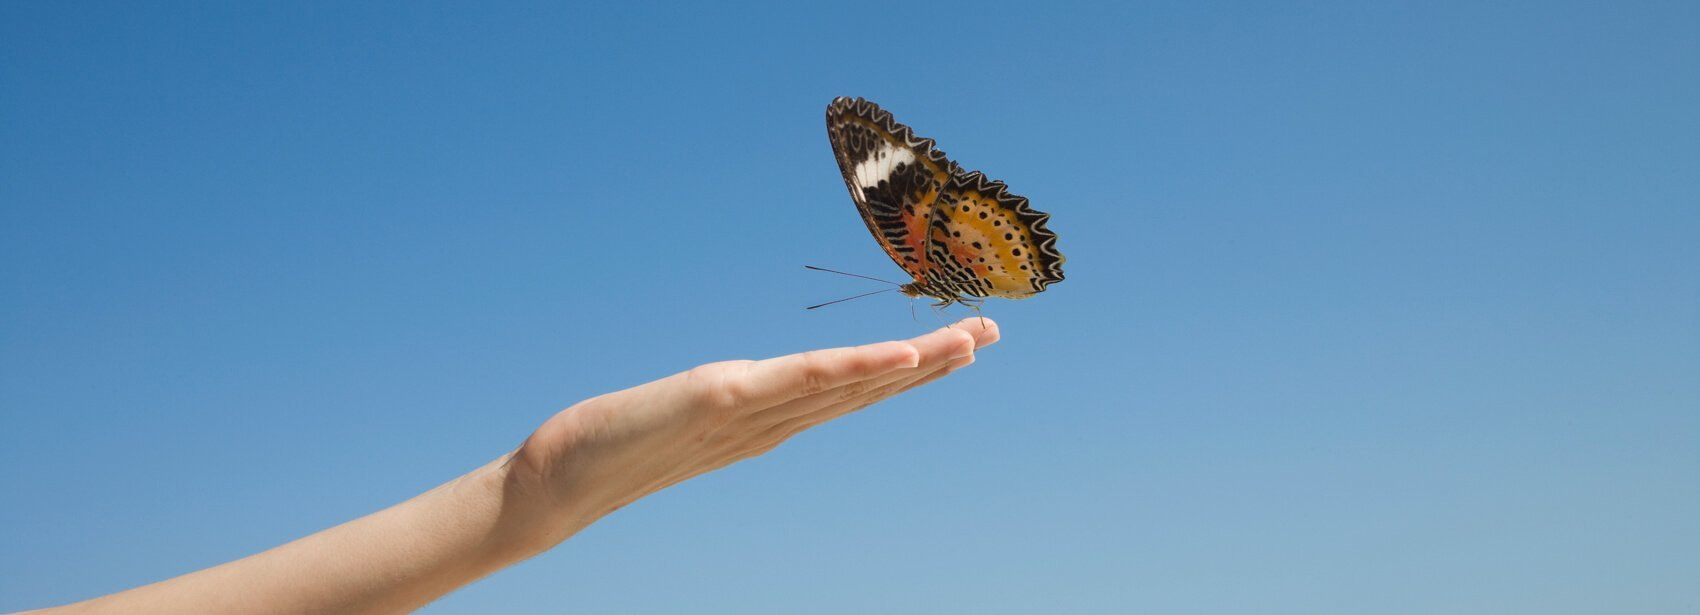 A hand reaching out to a butterfly